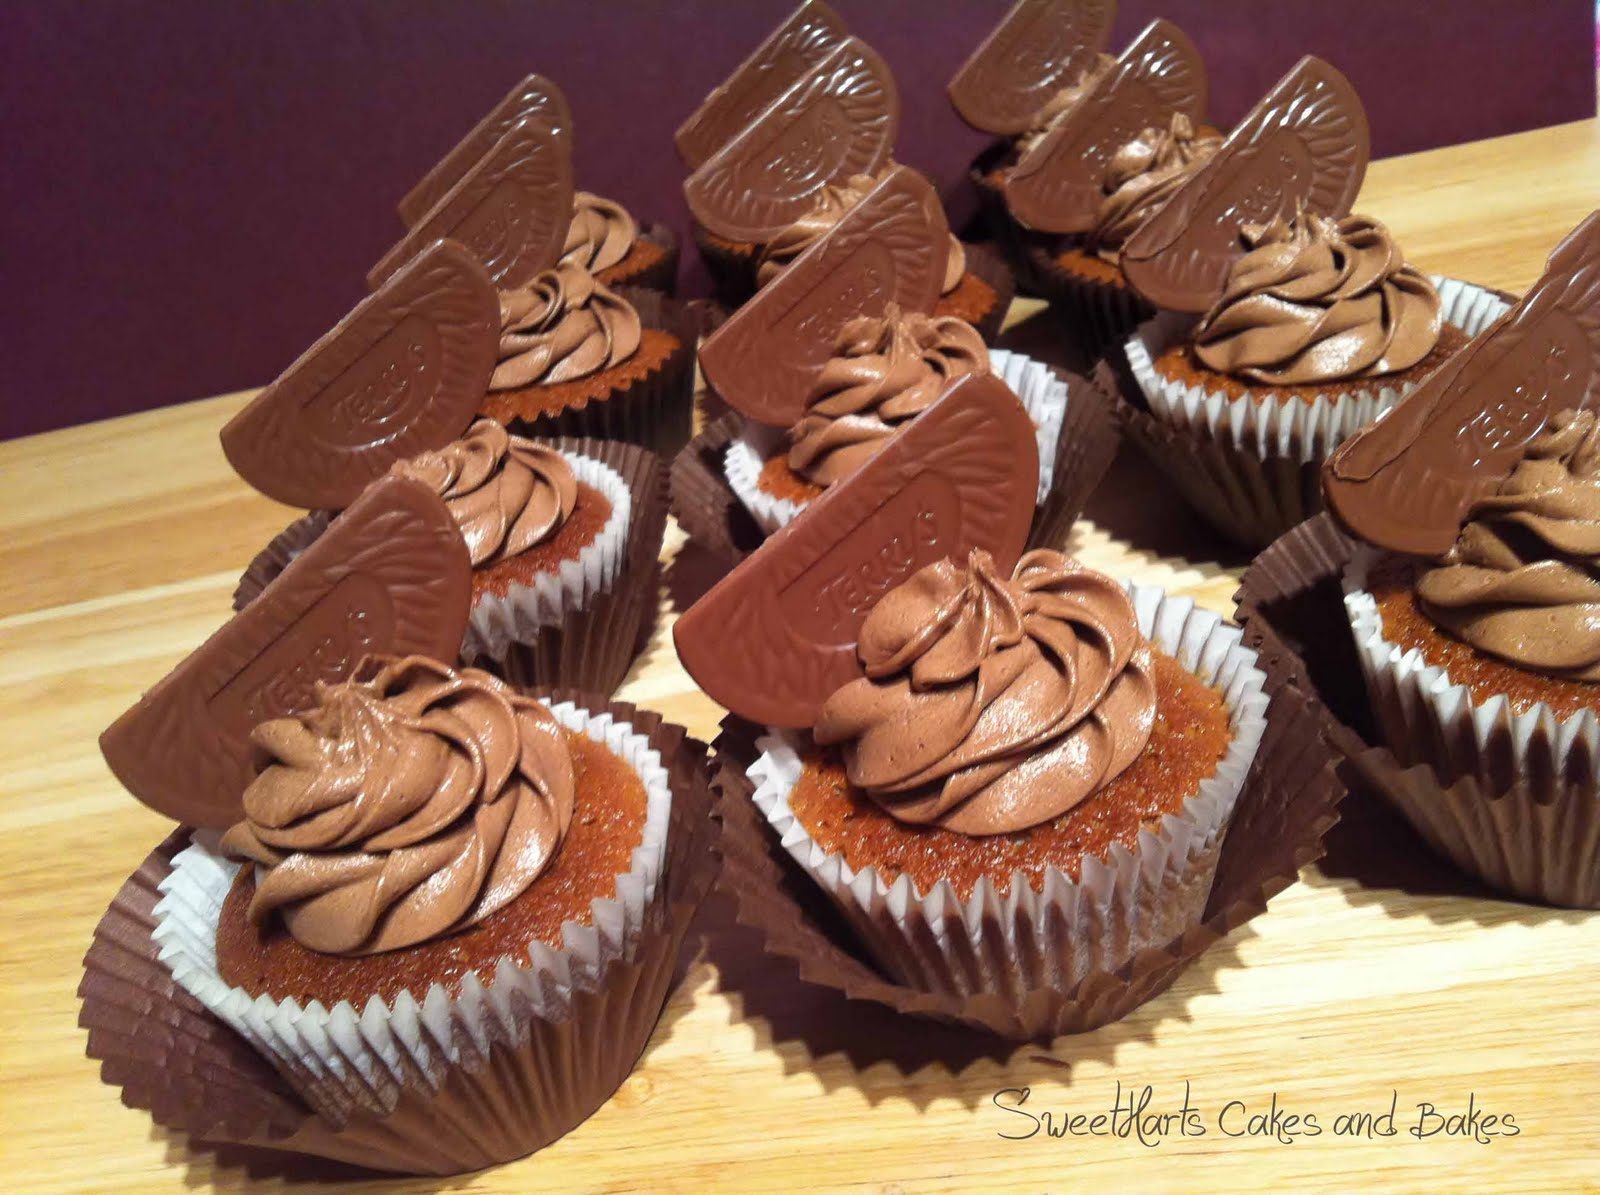 Sweetharts Cakes and Bakes: Chocolate Orange Cupcakes....a big hit!